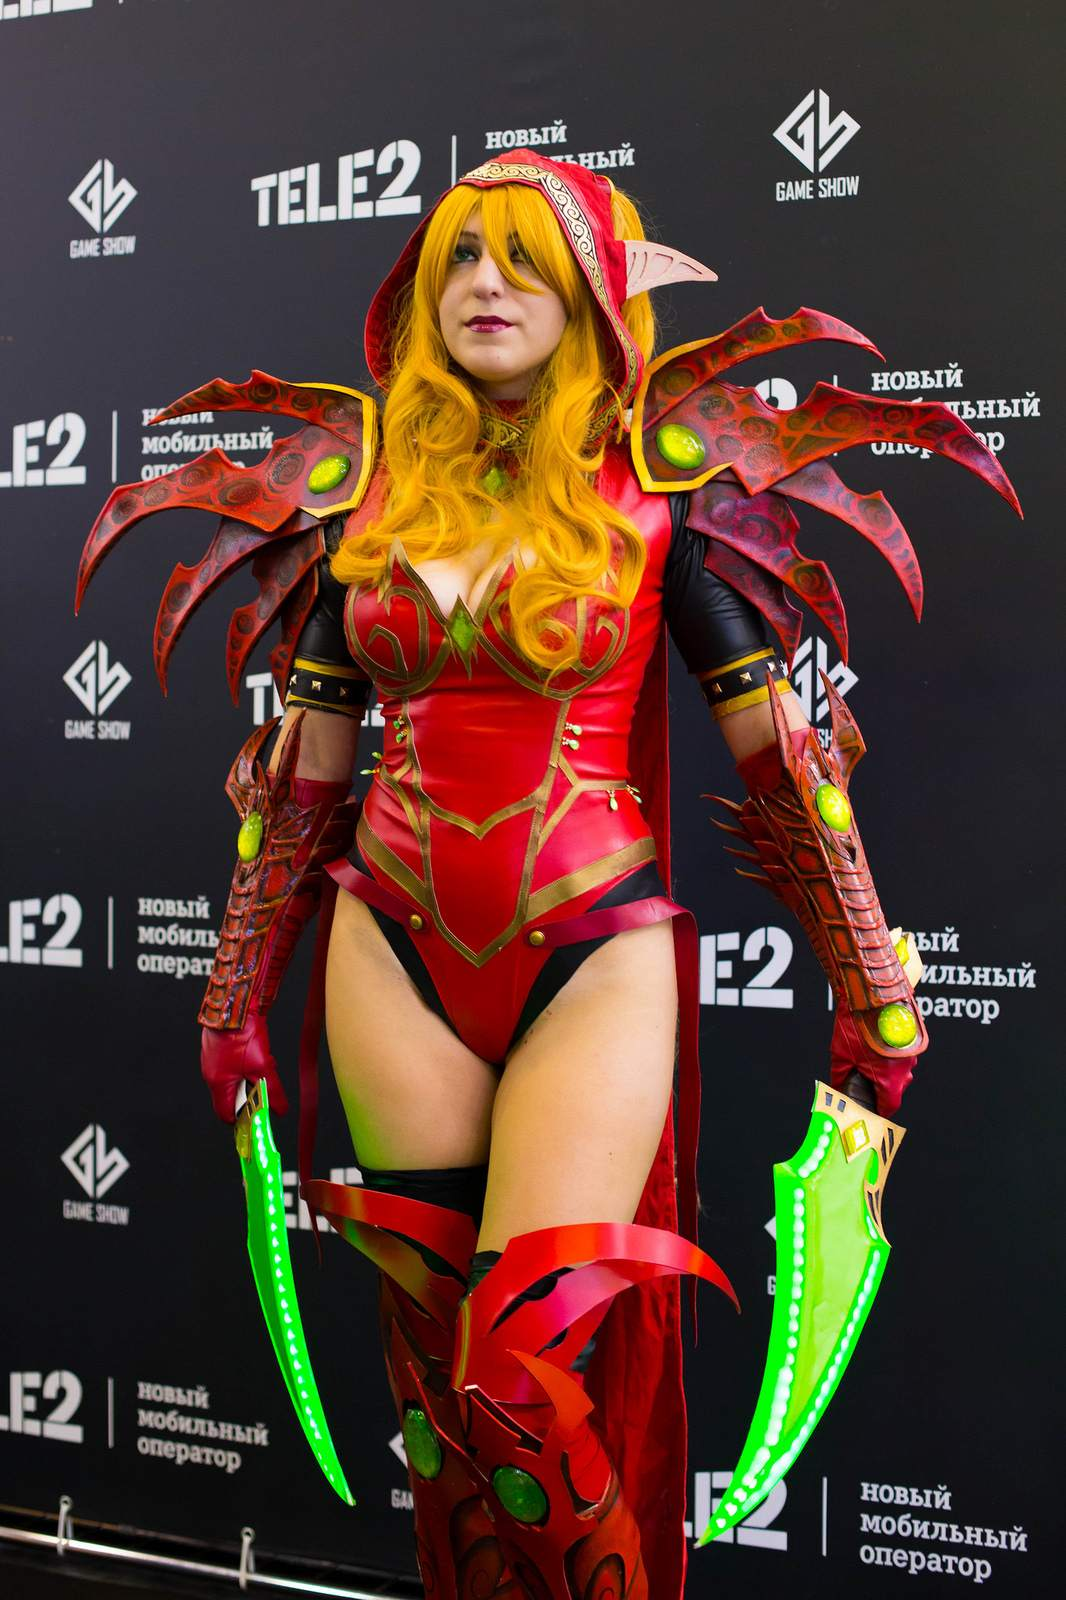 comiccon2 Comic Con Russia and IgroMir exhibition 2015